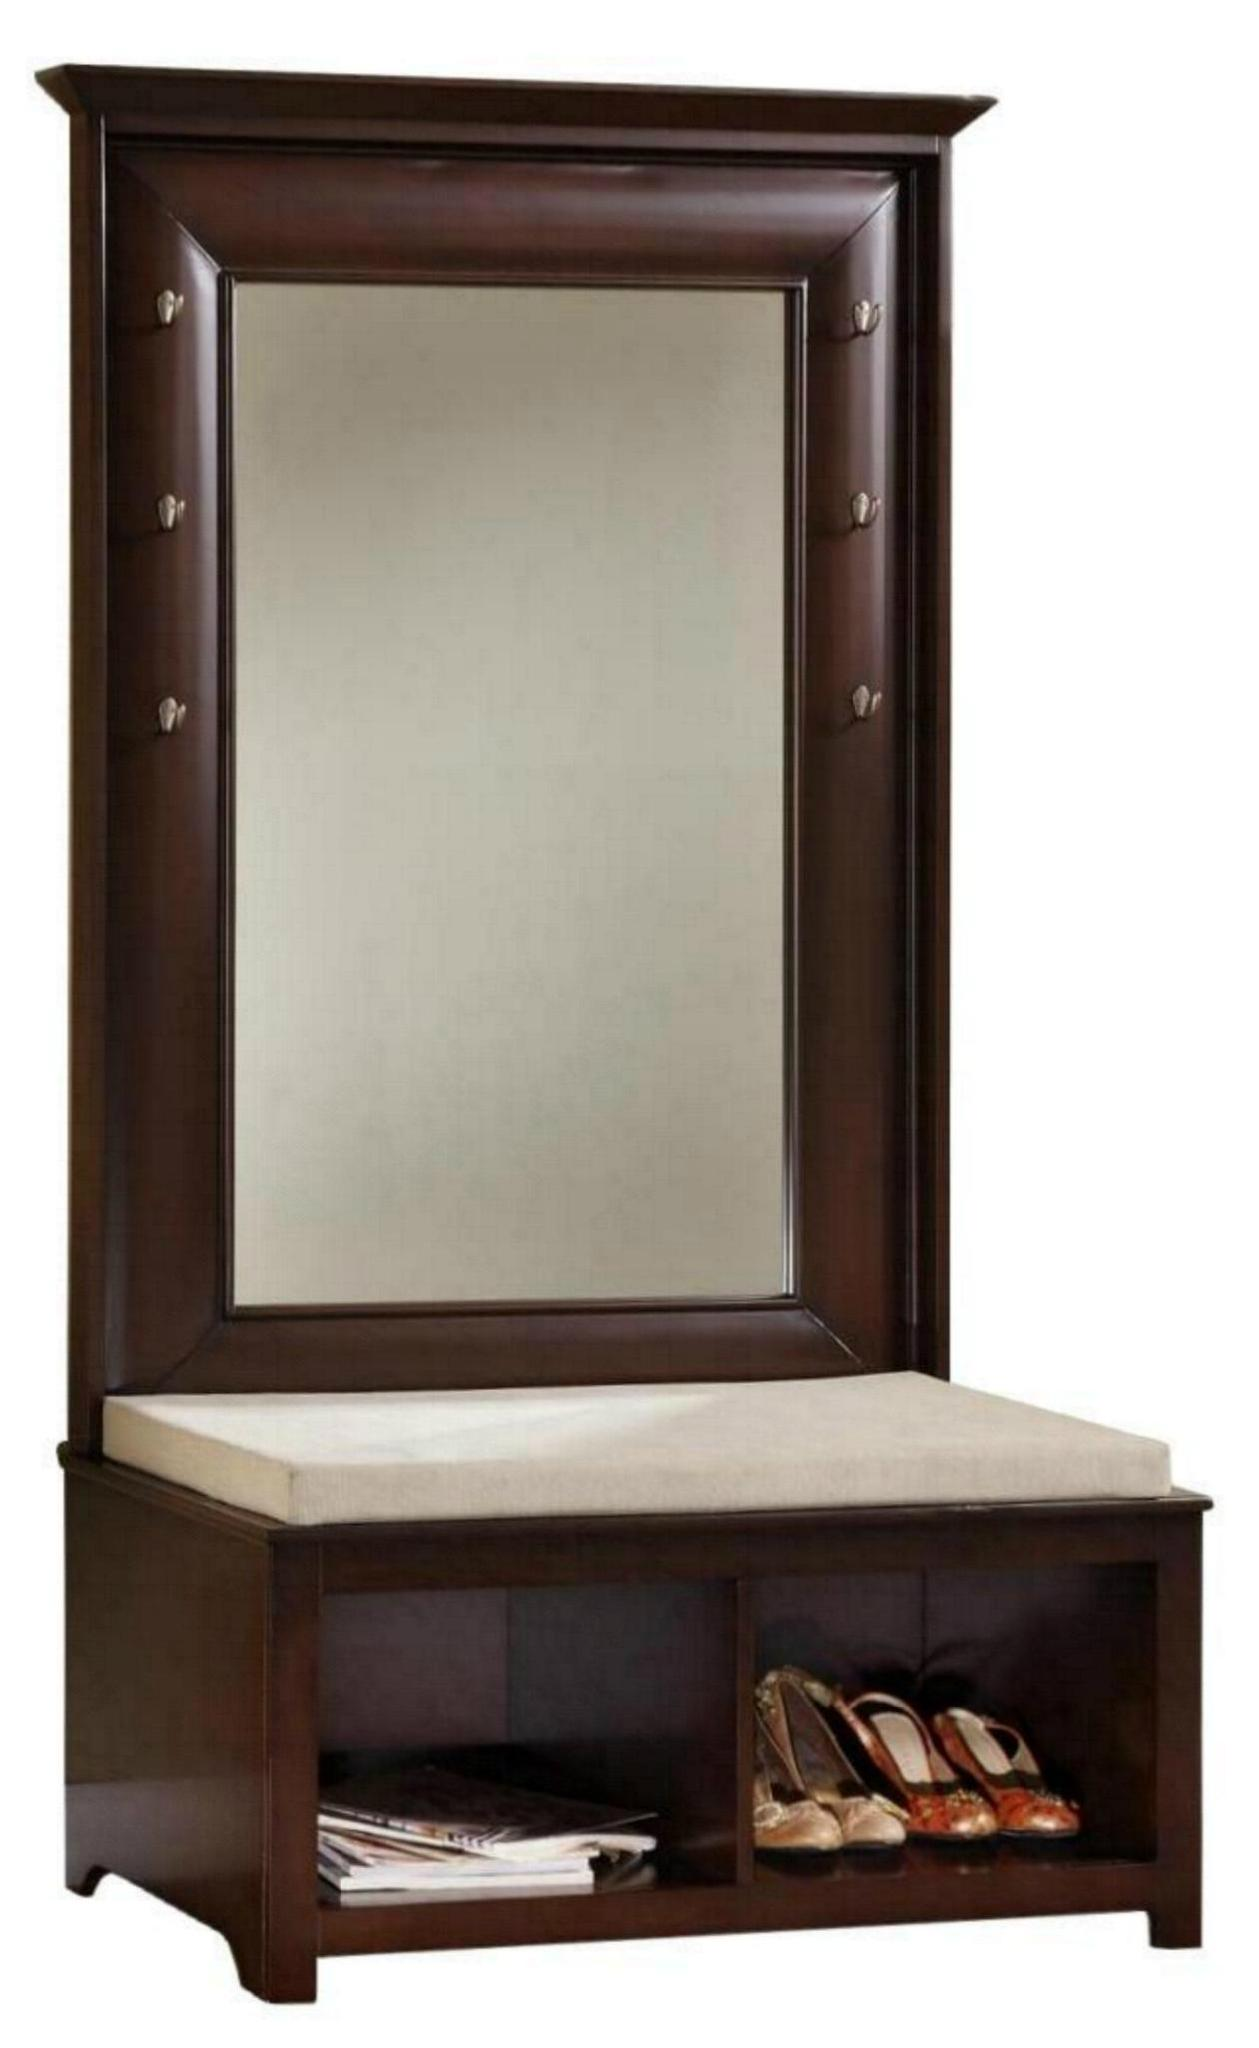 Living Room Mirror Hall Tree Entryway Wood Storage Bench Wd 2542 Mighty Taiwan Manufacturer